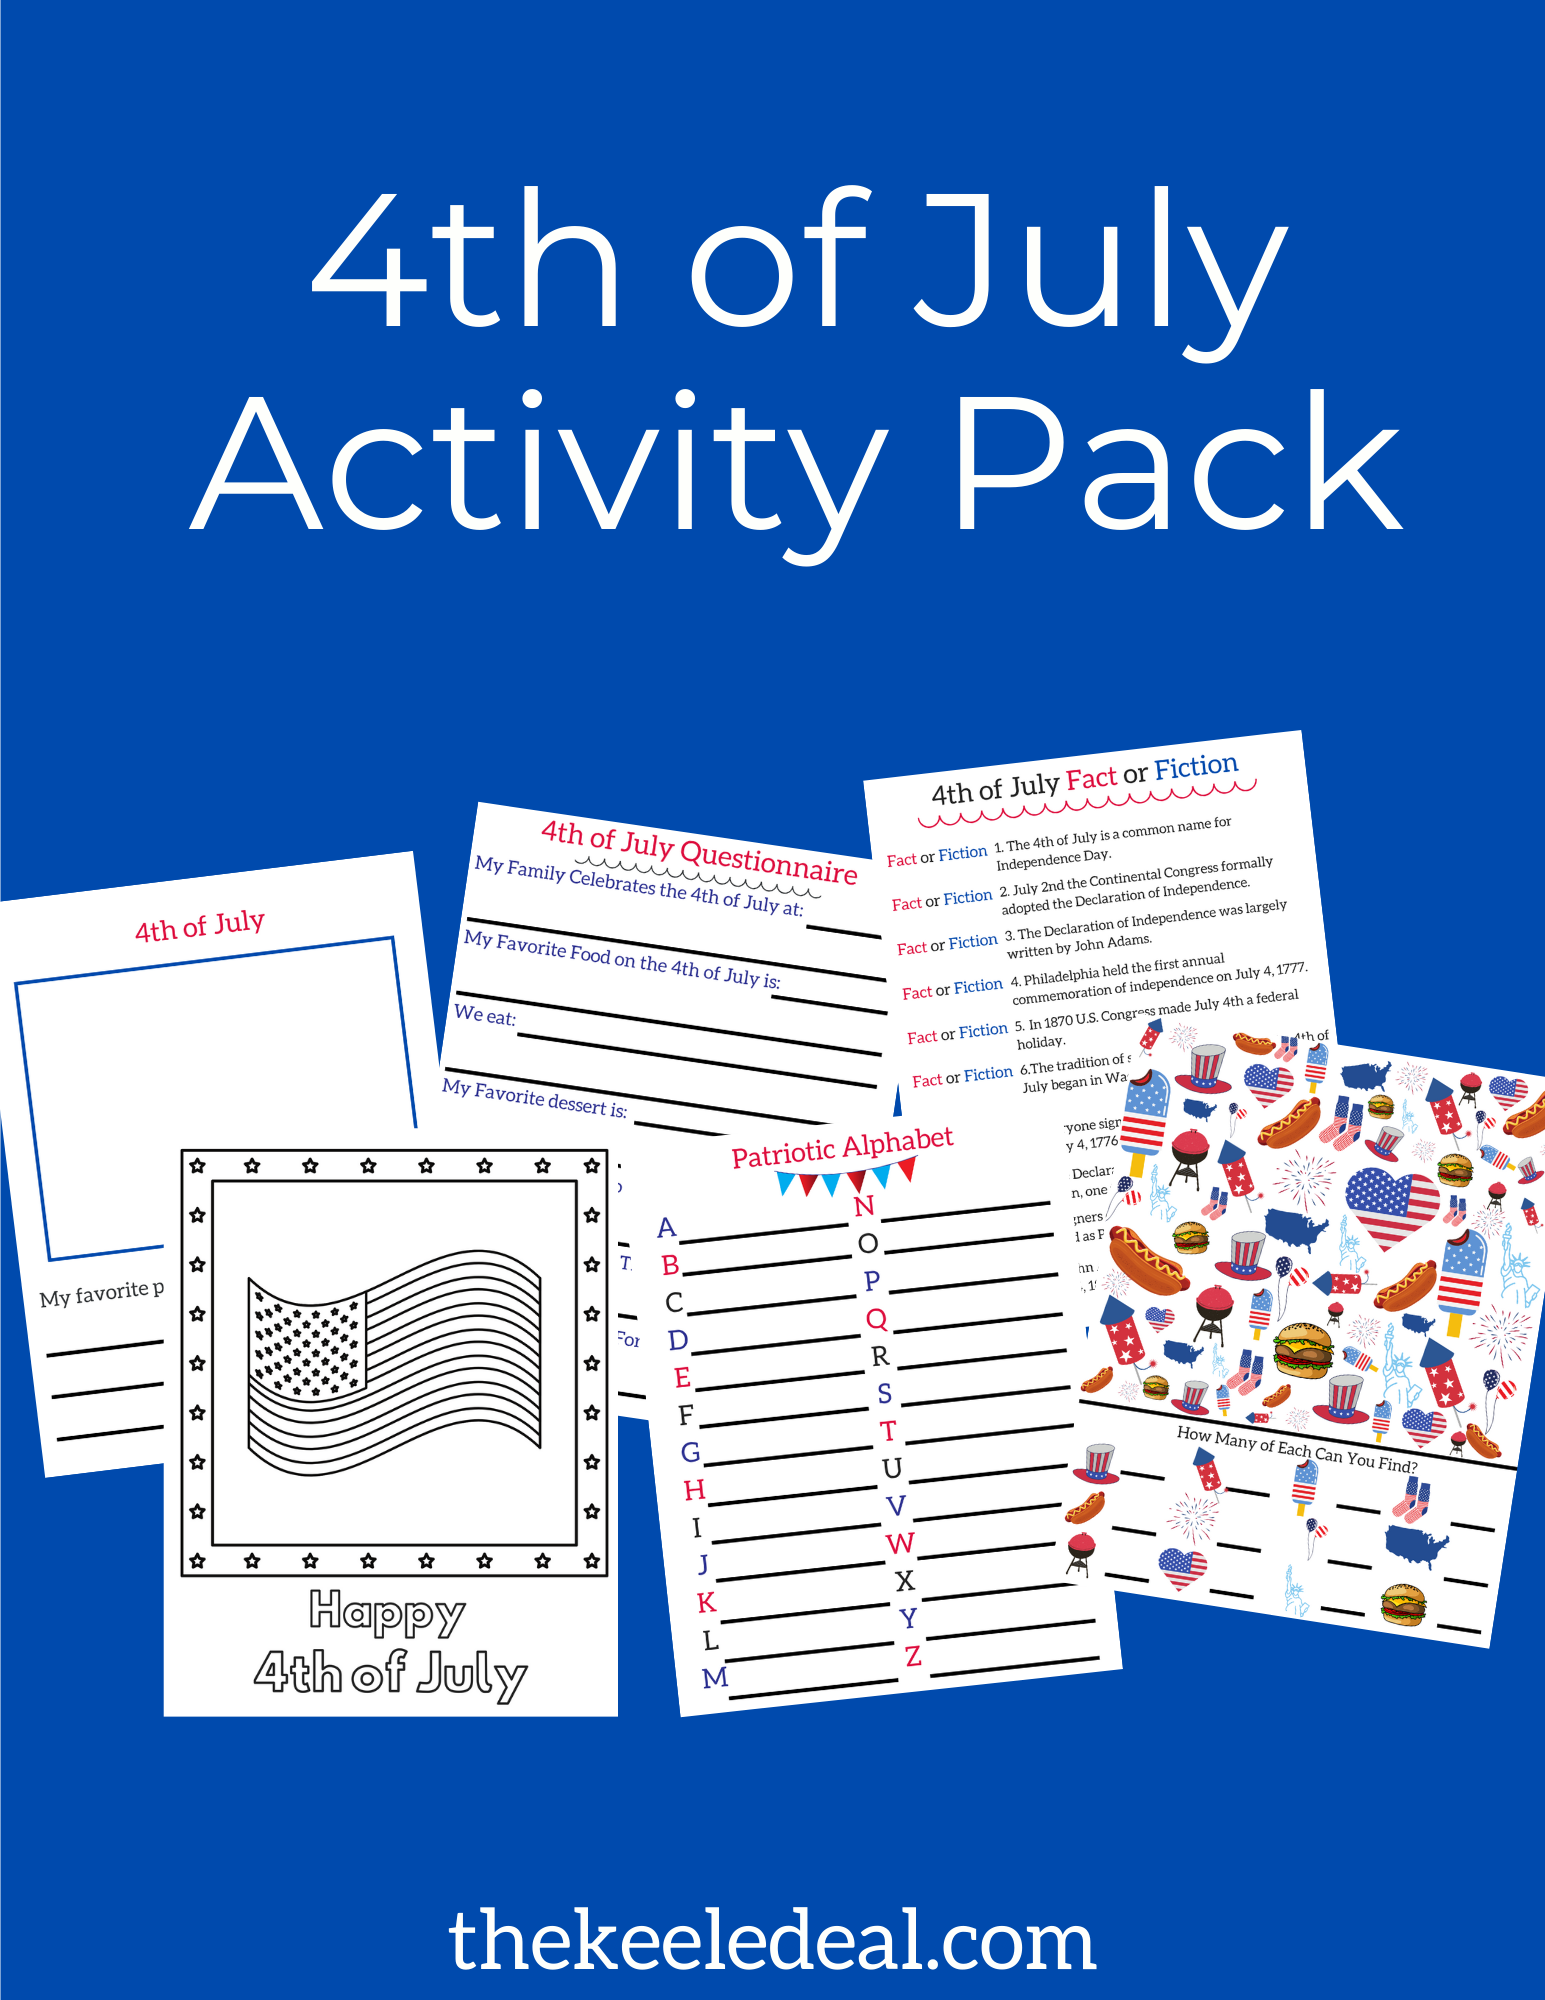 4th Of July Kids Activity Pack Printable Activity Pack Fourth Of July Crafts For Kids Activities For Kids [ 2000 x 1545 Pixel ]